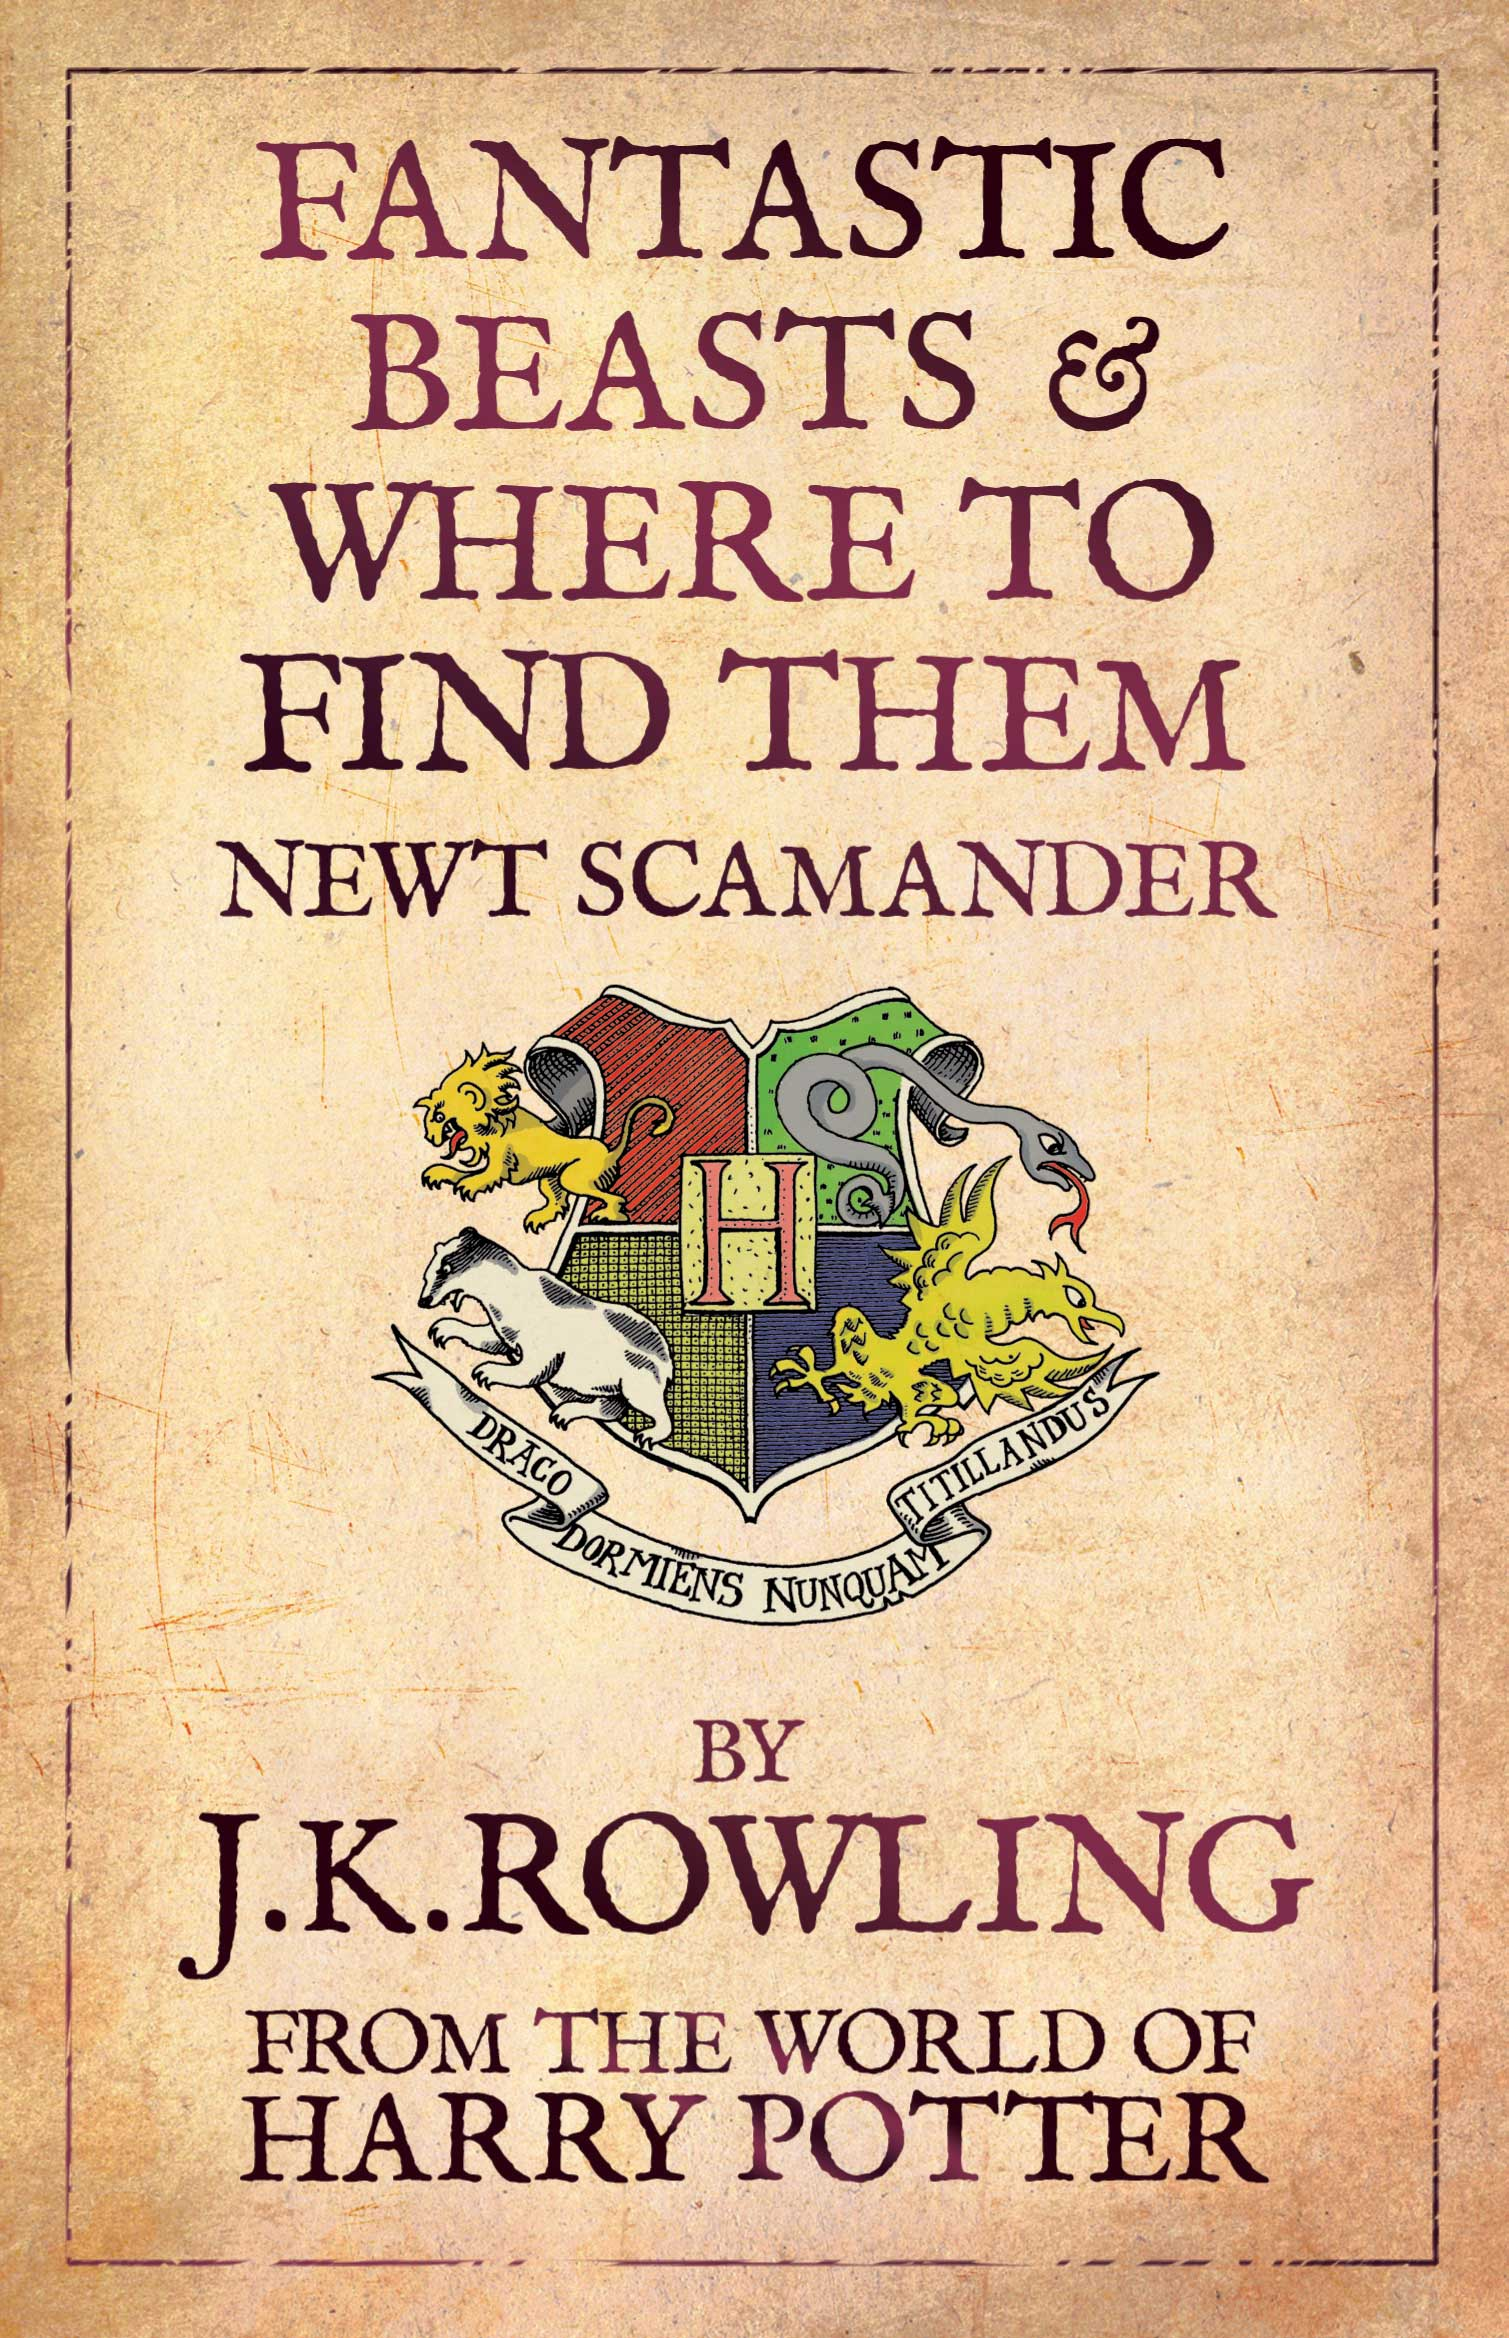 Harry Potter Book Kickass : Fantastic beasts where to find them the teen book club